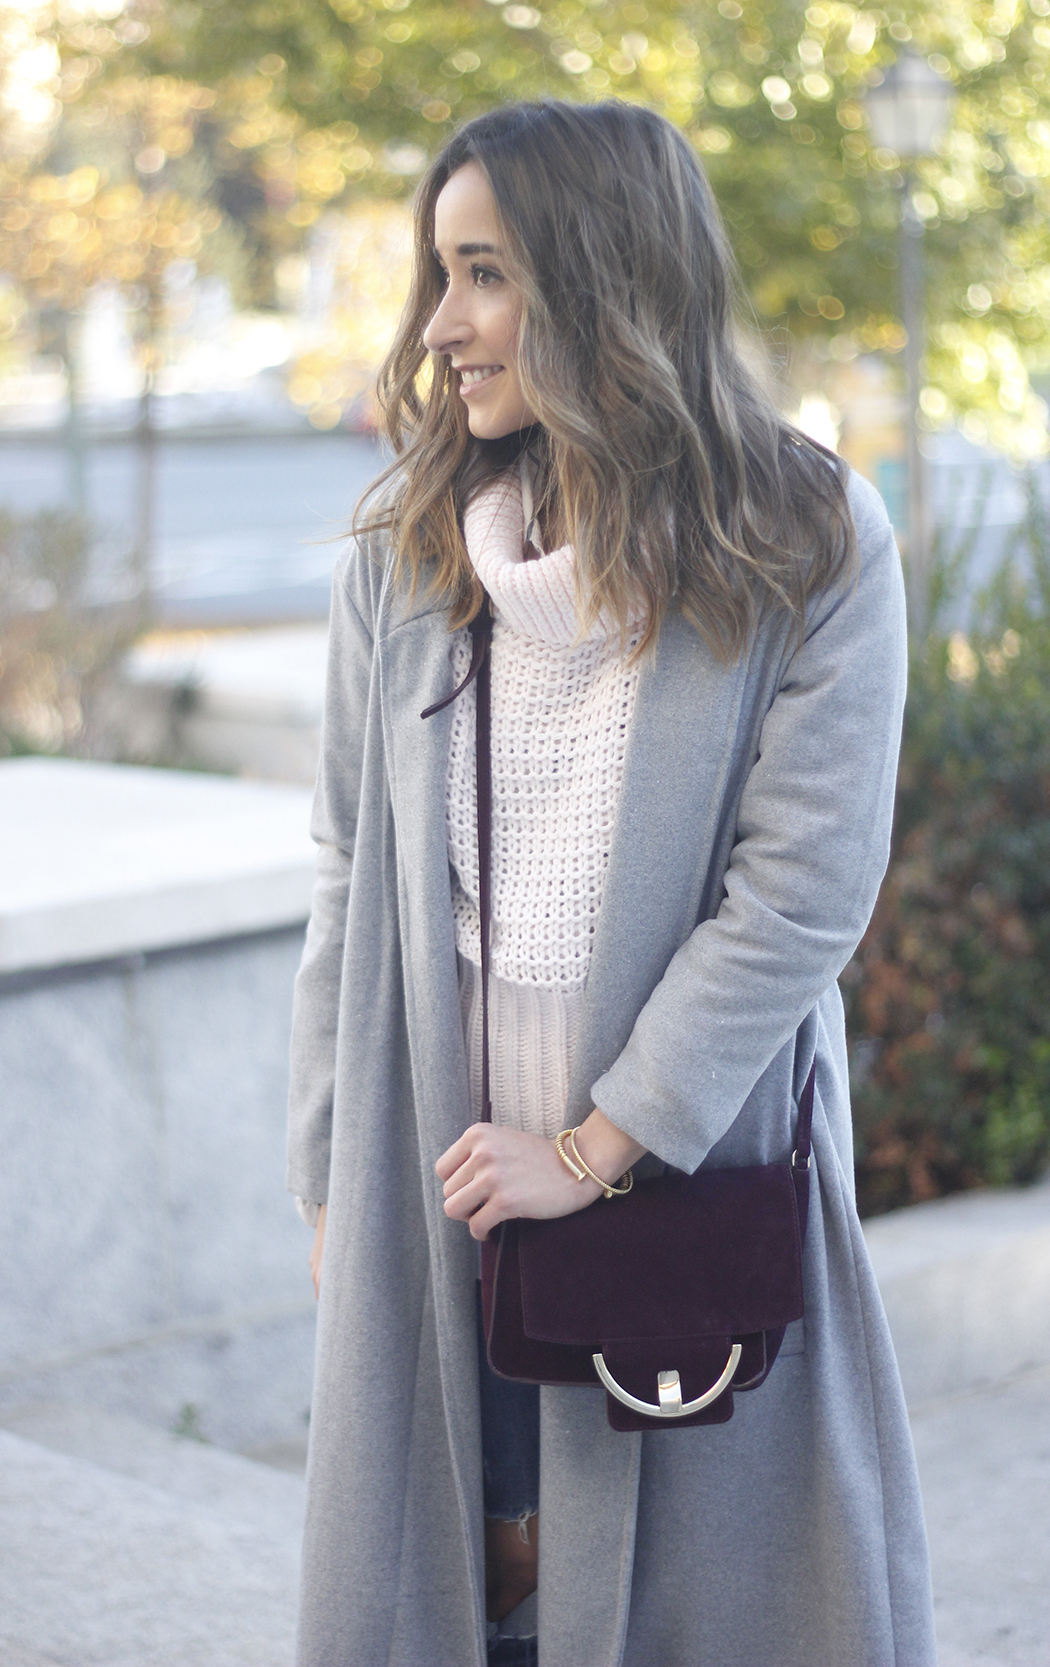 Grey coat with pink sweater jeans burgundy purse uterqüe outfit streetstyle08